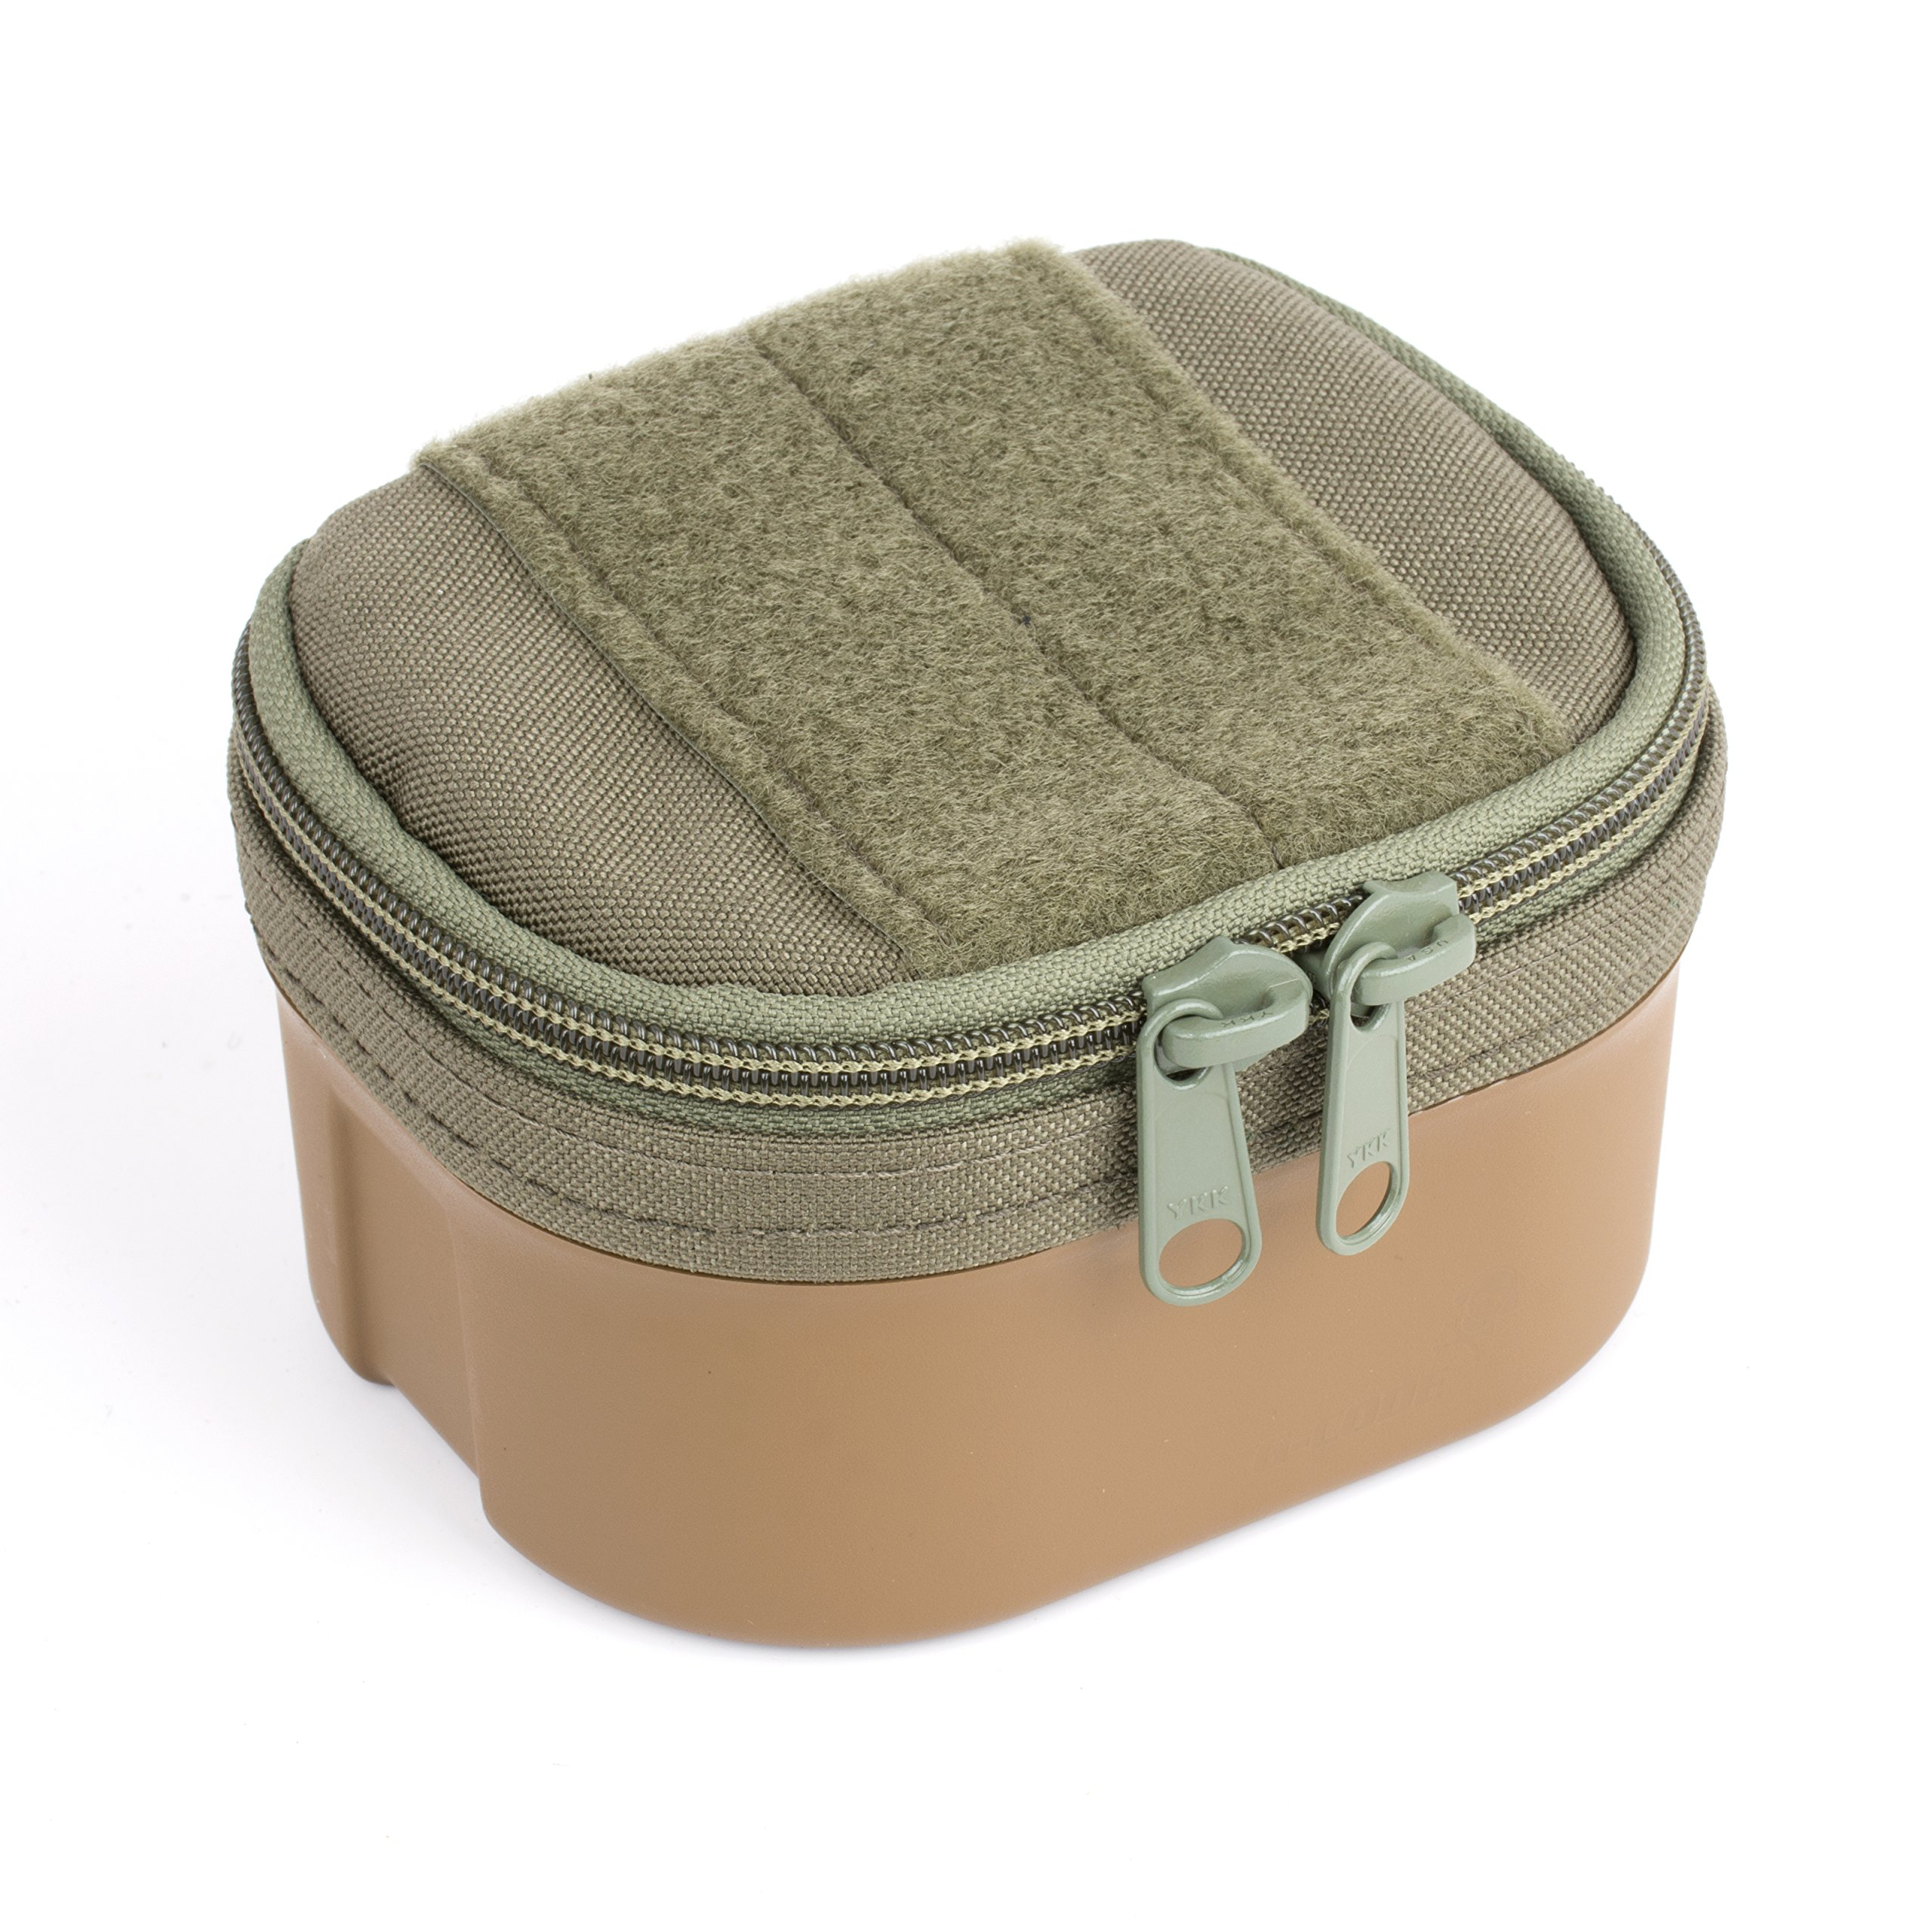 G-CODE Bang Box -Ammunition transport made simple! 100% Made in USA (od green on tan)